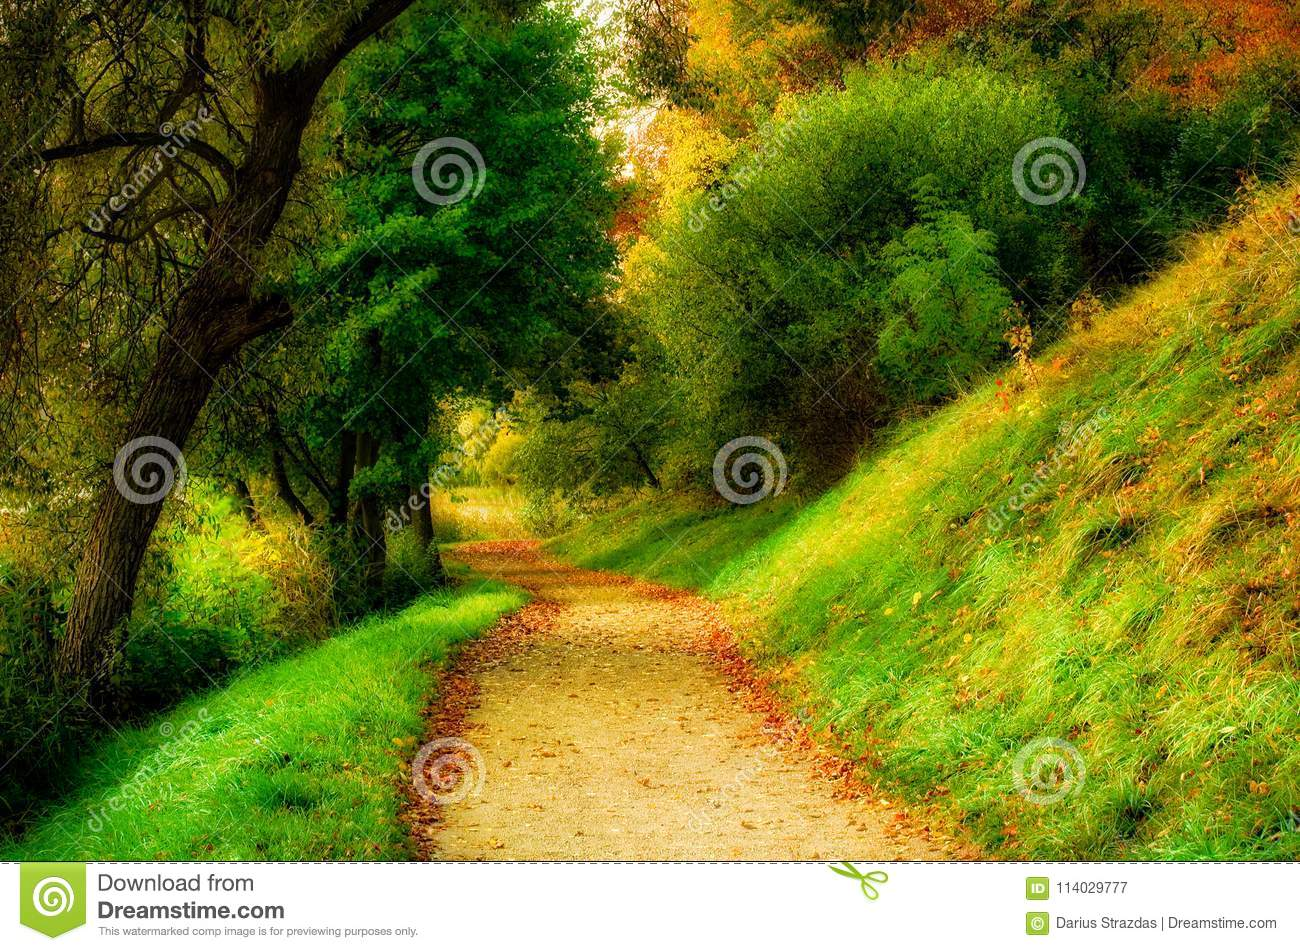 Scenic nature landscape of countryside path through forest